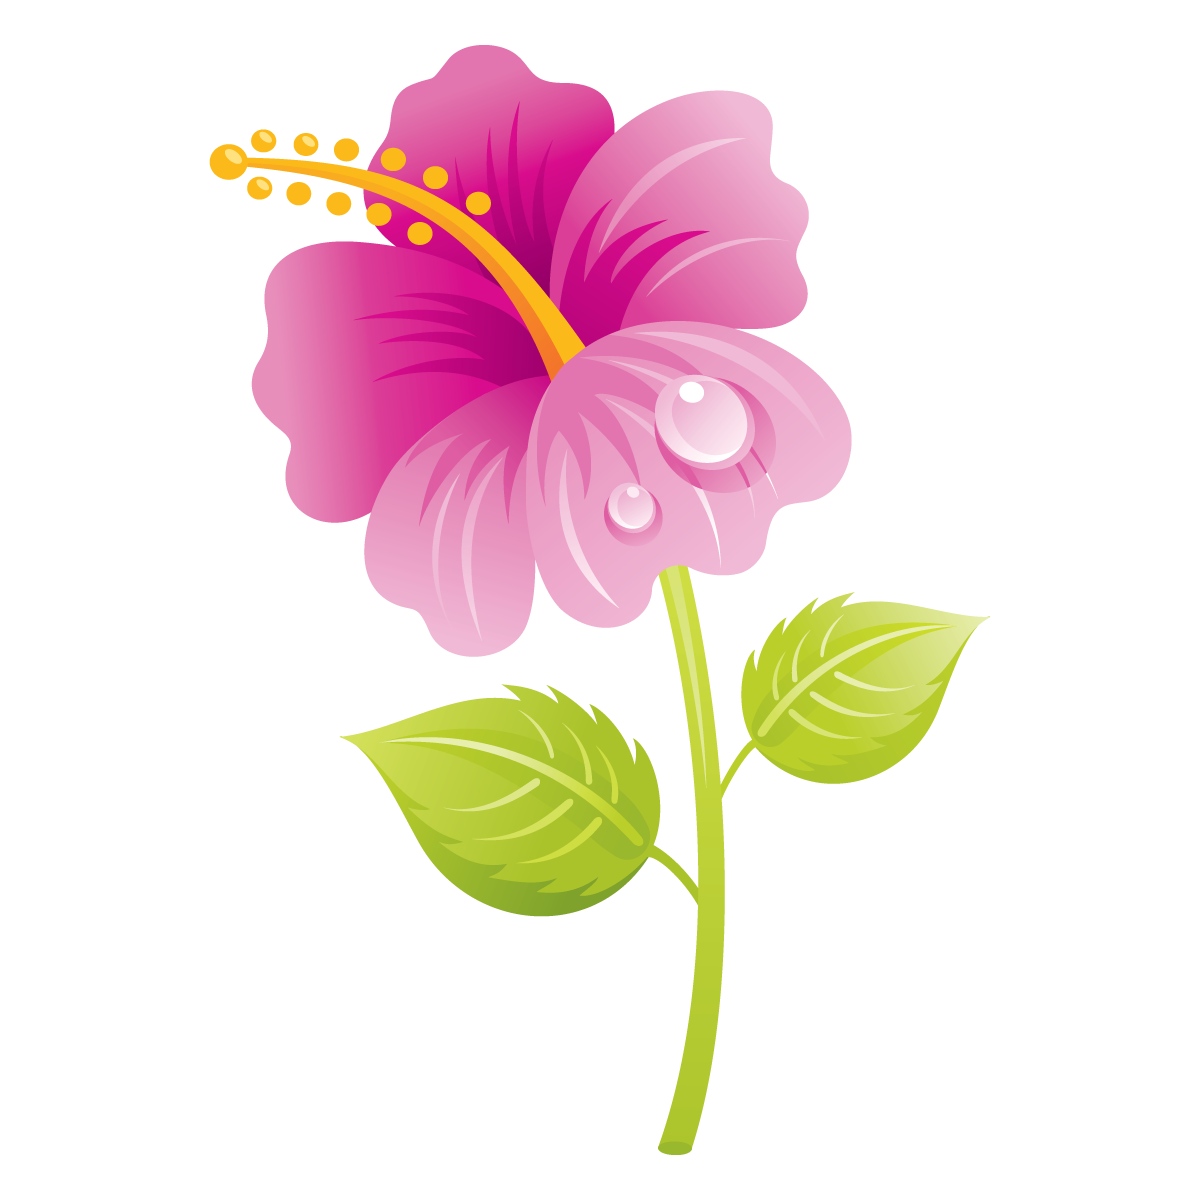 Flower Clipart - Clipart Kid